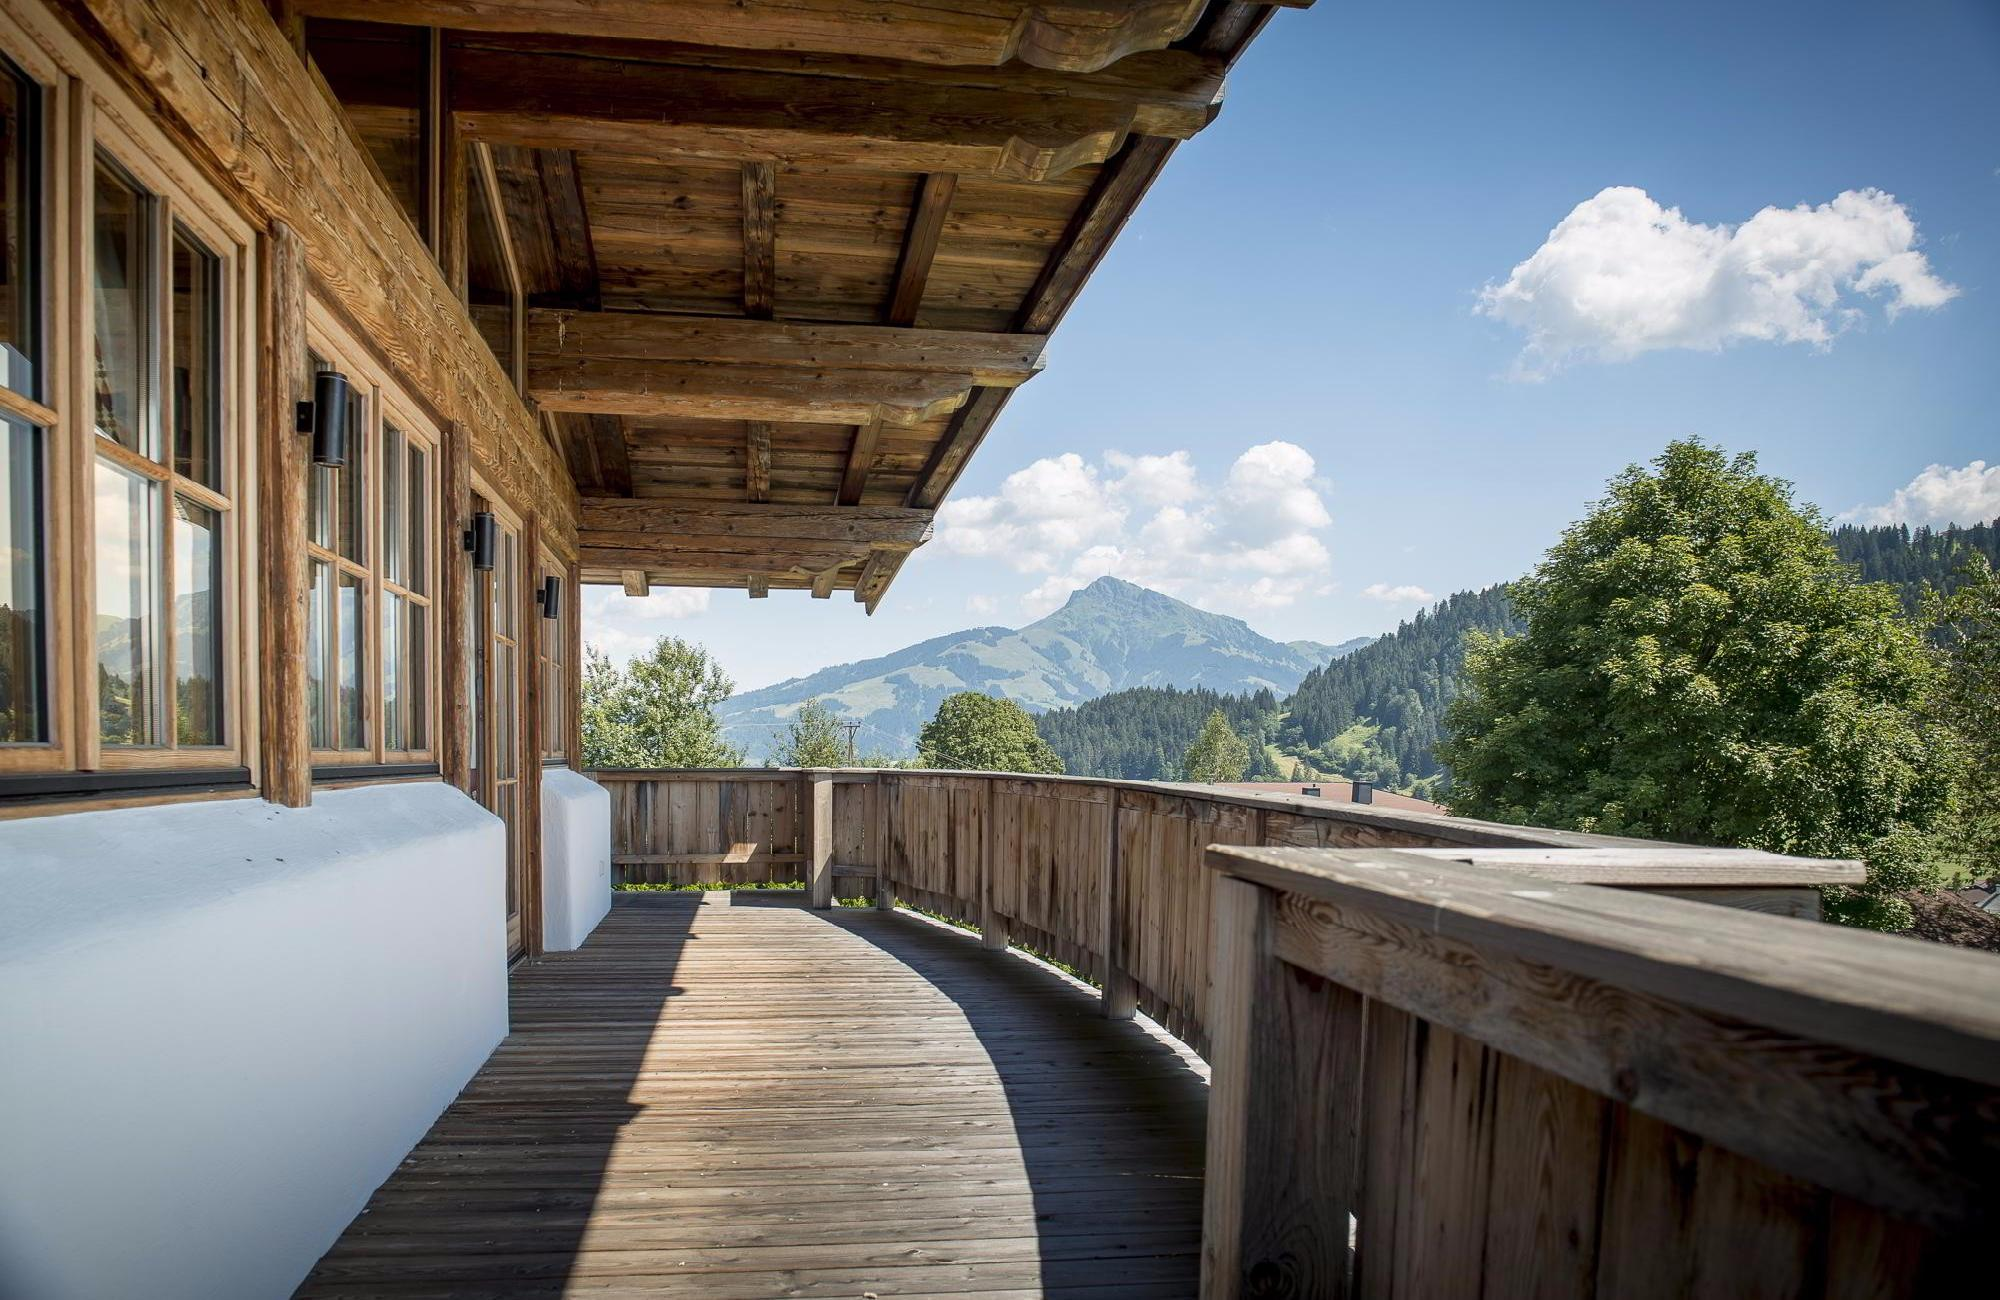 Luxury country house in a sunny location of Going for Sale - Tirol - Austria